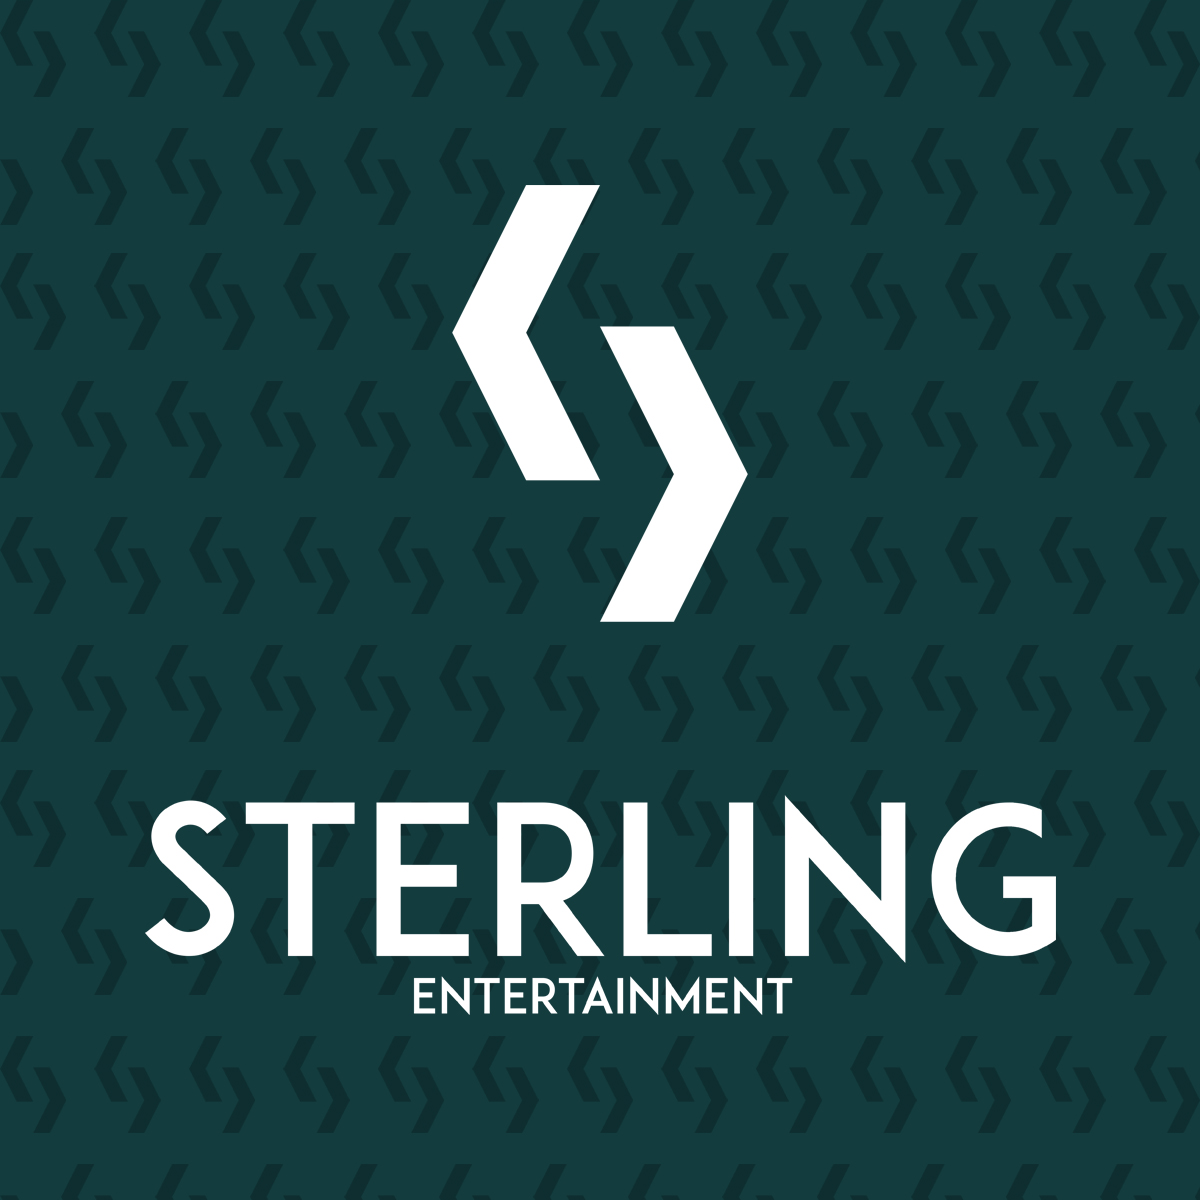 branding-creative-agency-logo design-community-marketing-web design-social media-business cards-sterling entertainment-print design